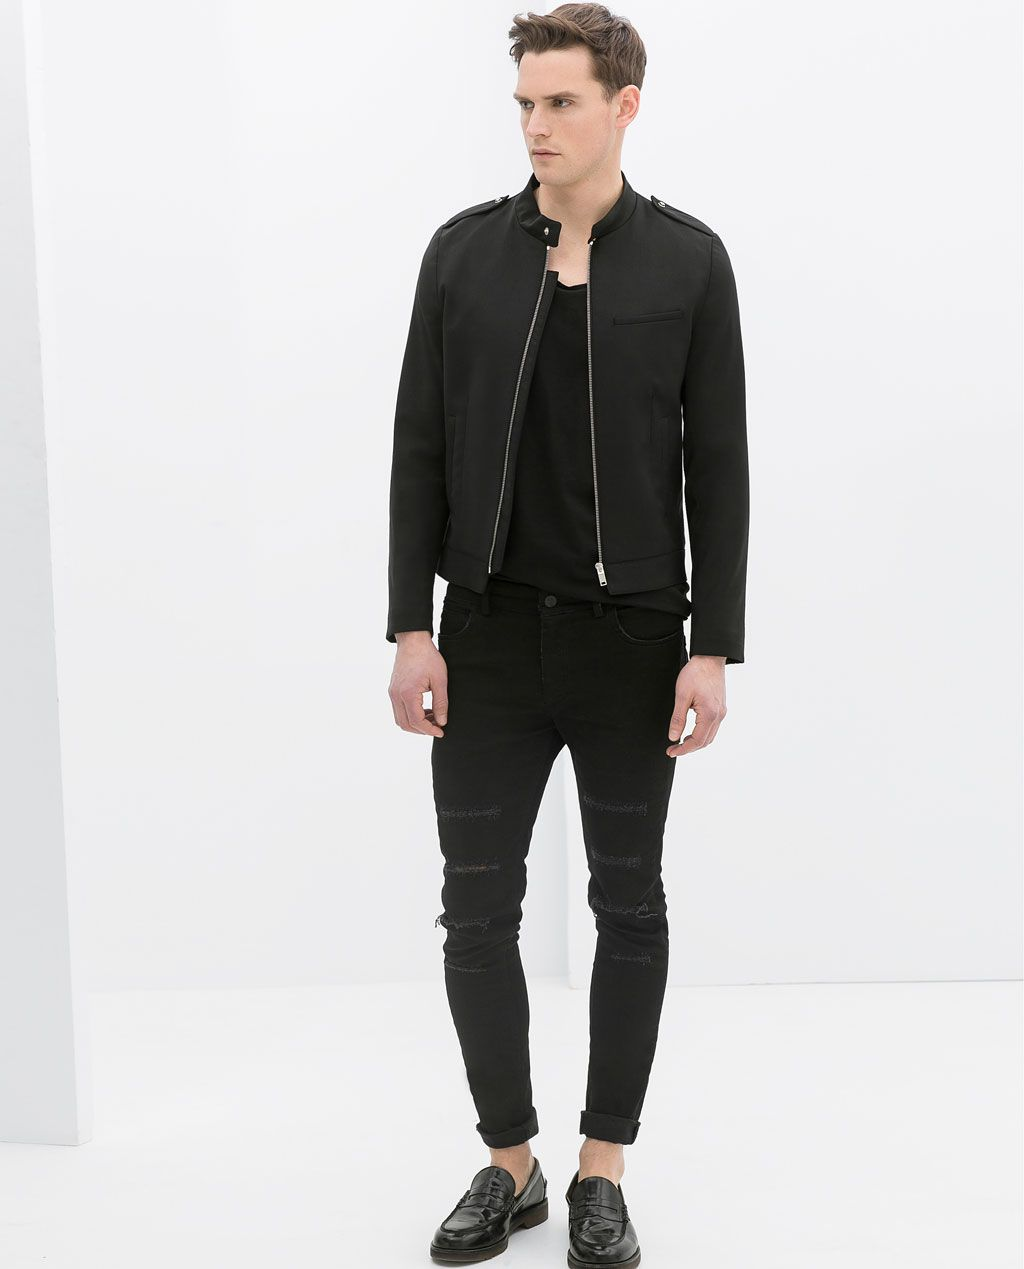 250973eeb0b8c ZARA - COLLECTION AW14 - WOOL BOMBER JACKET